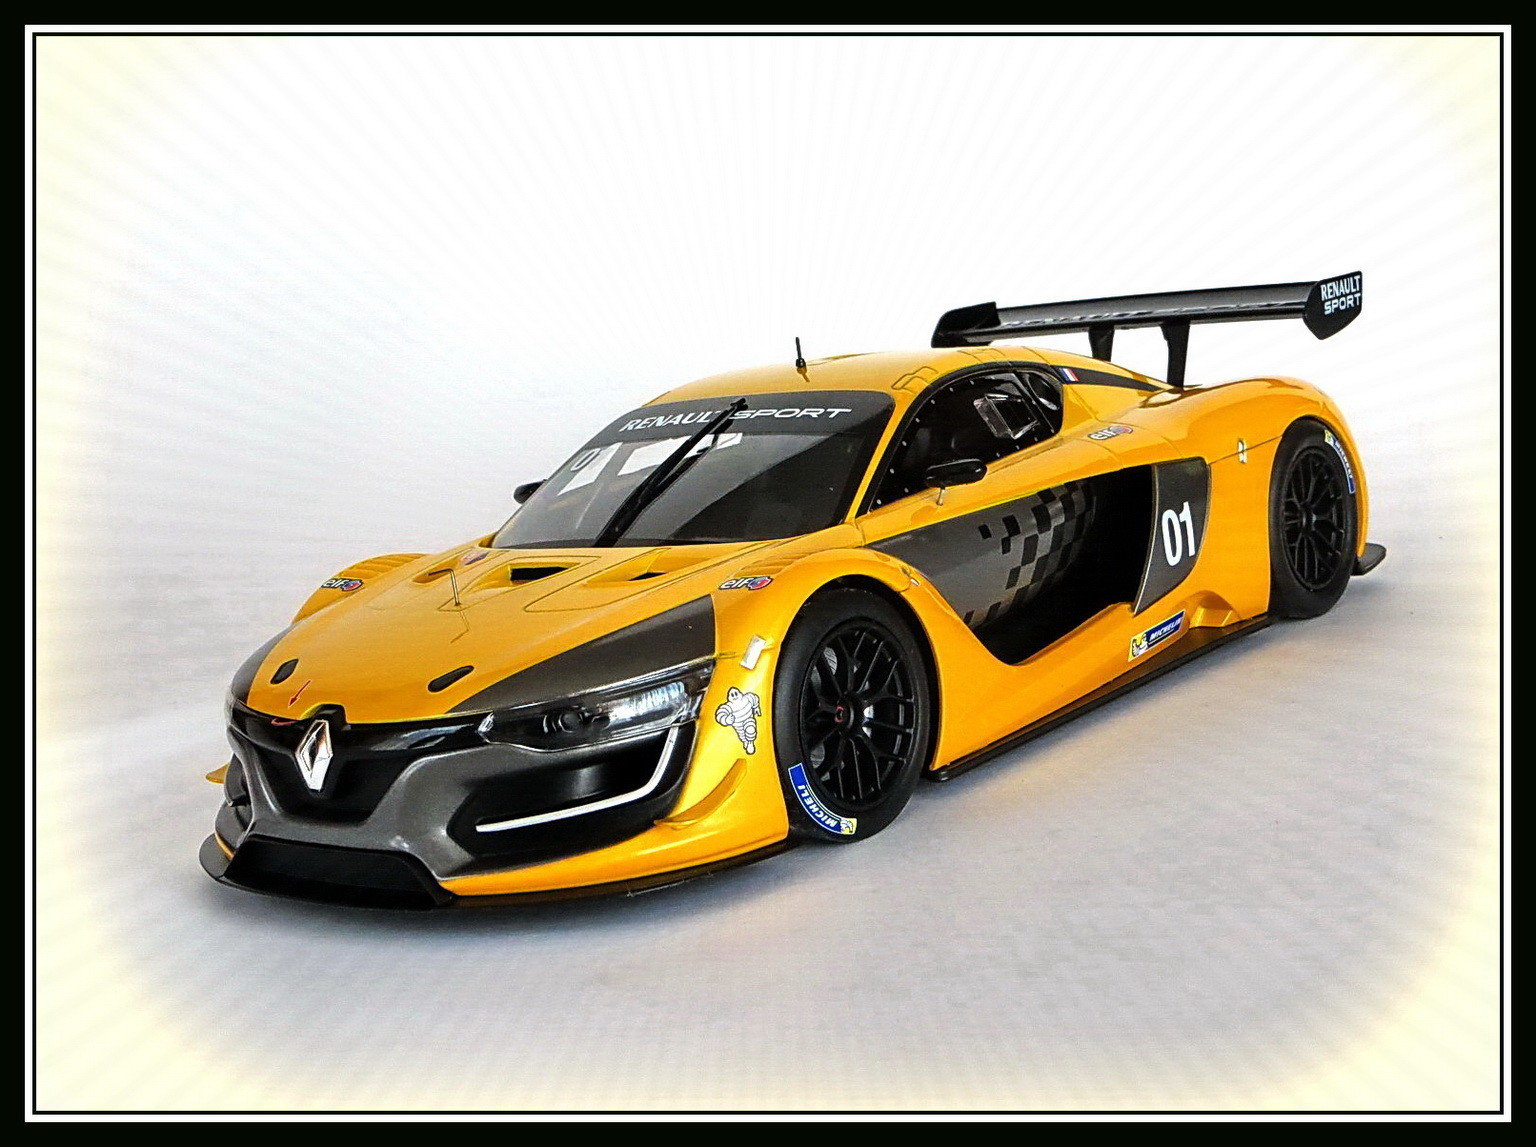 renault-rs 01-2015-004